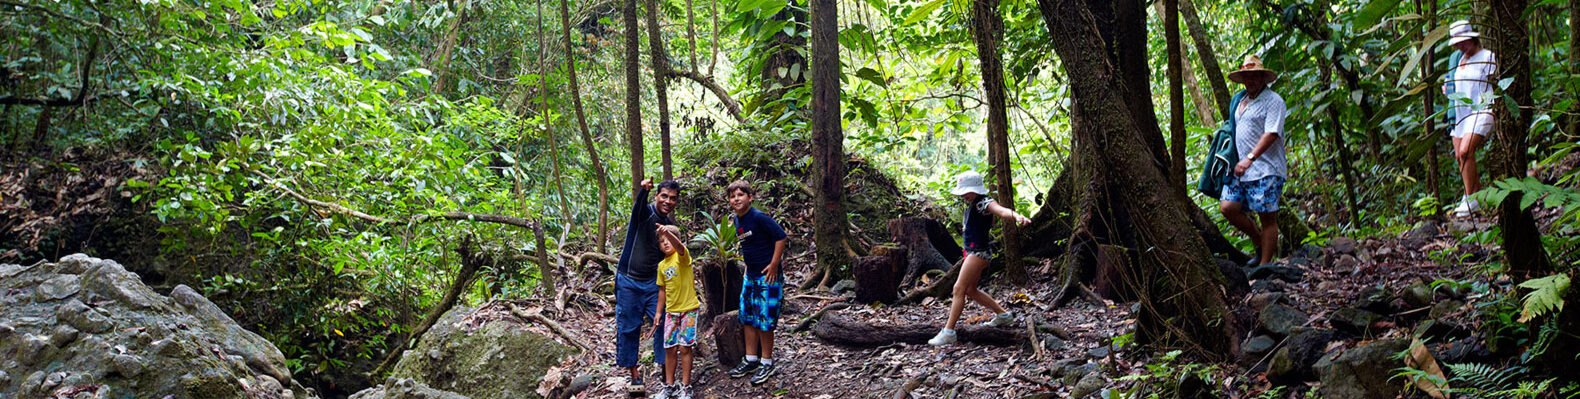 people in a tropical forest pointing at the trees